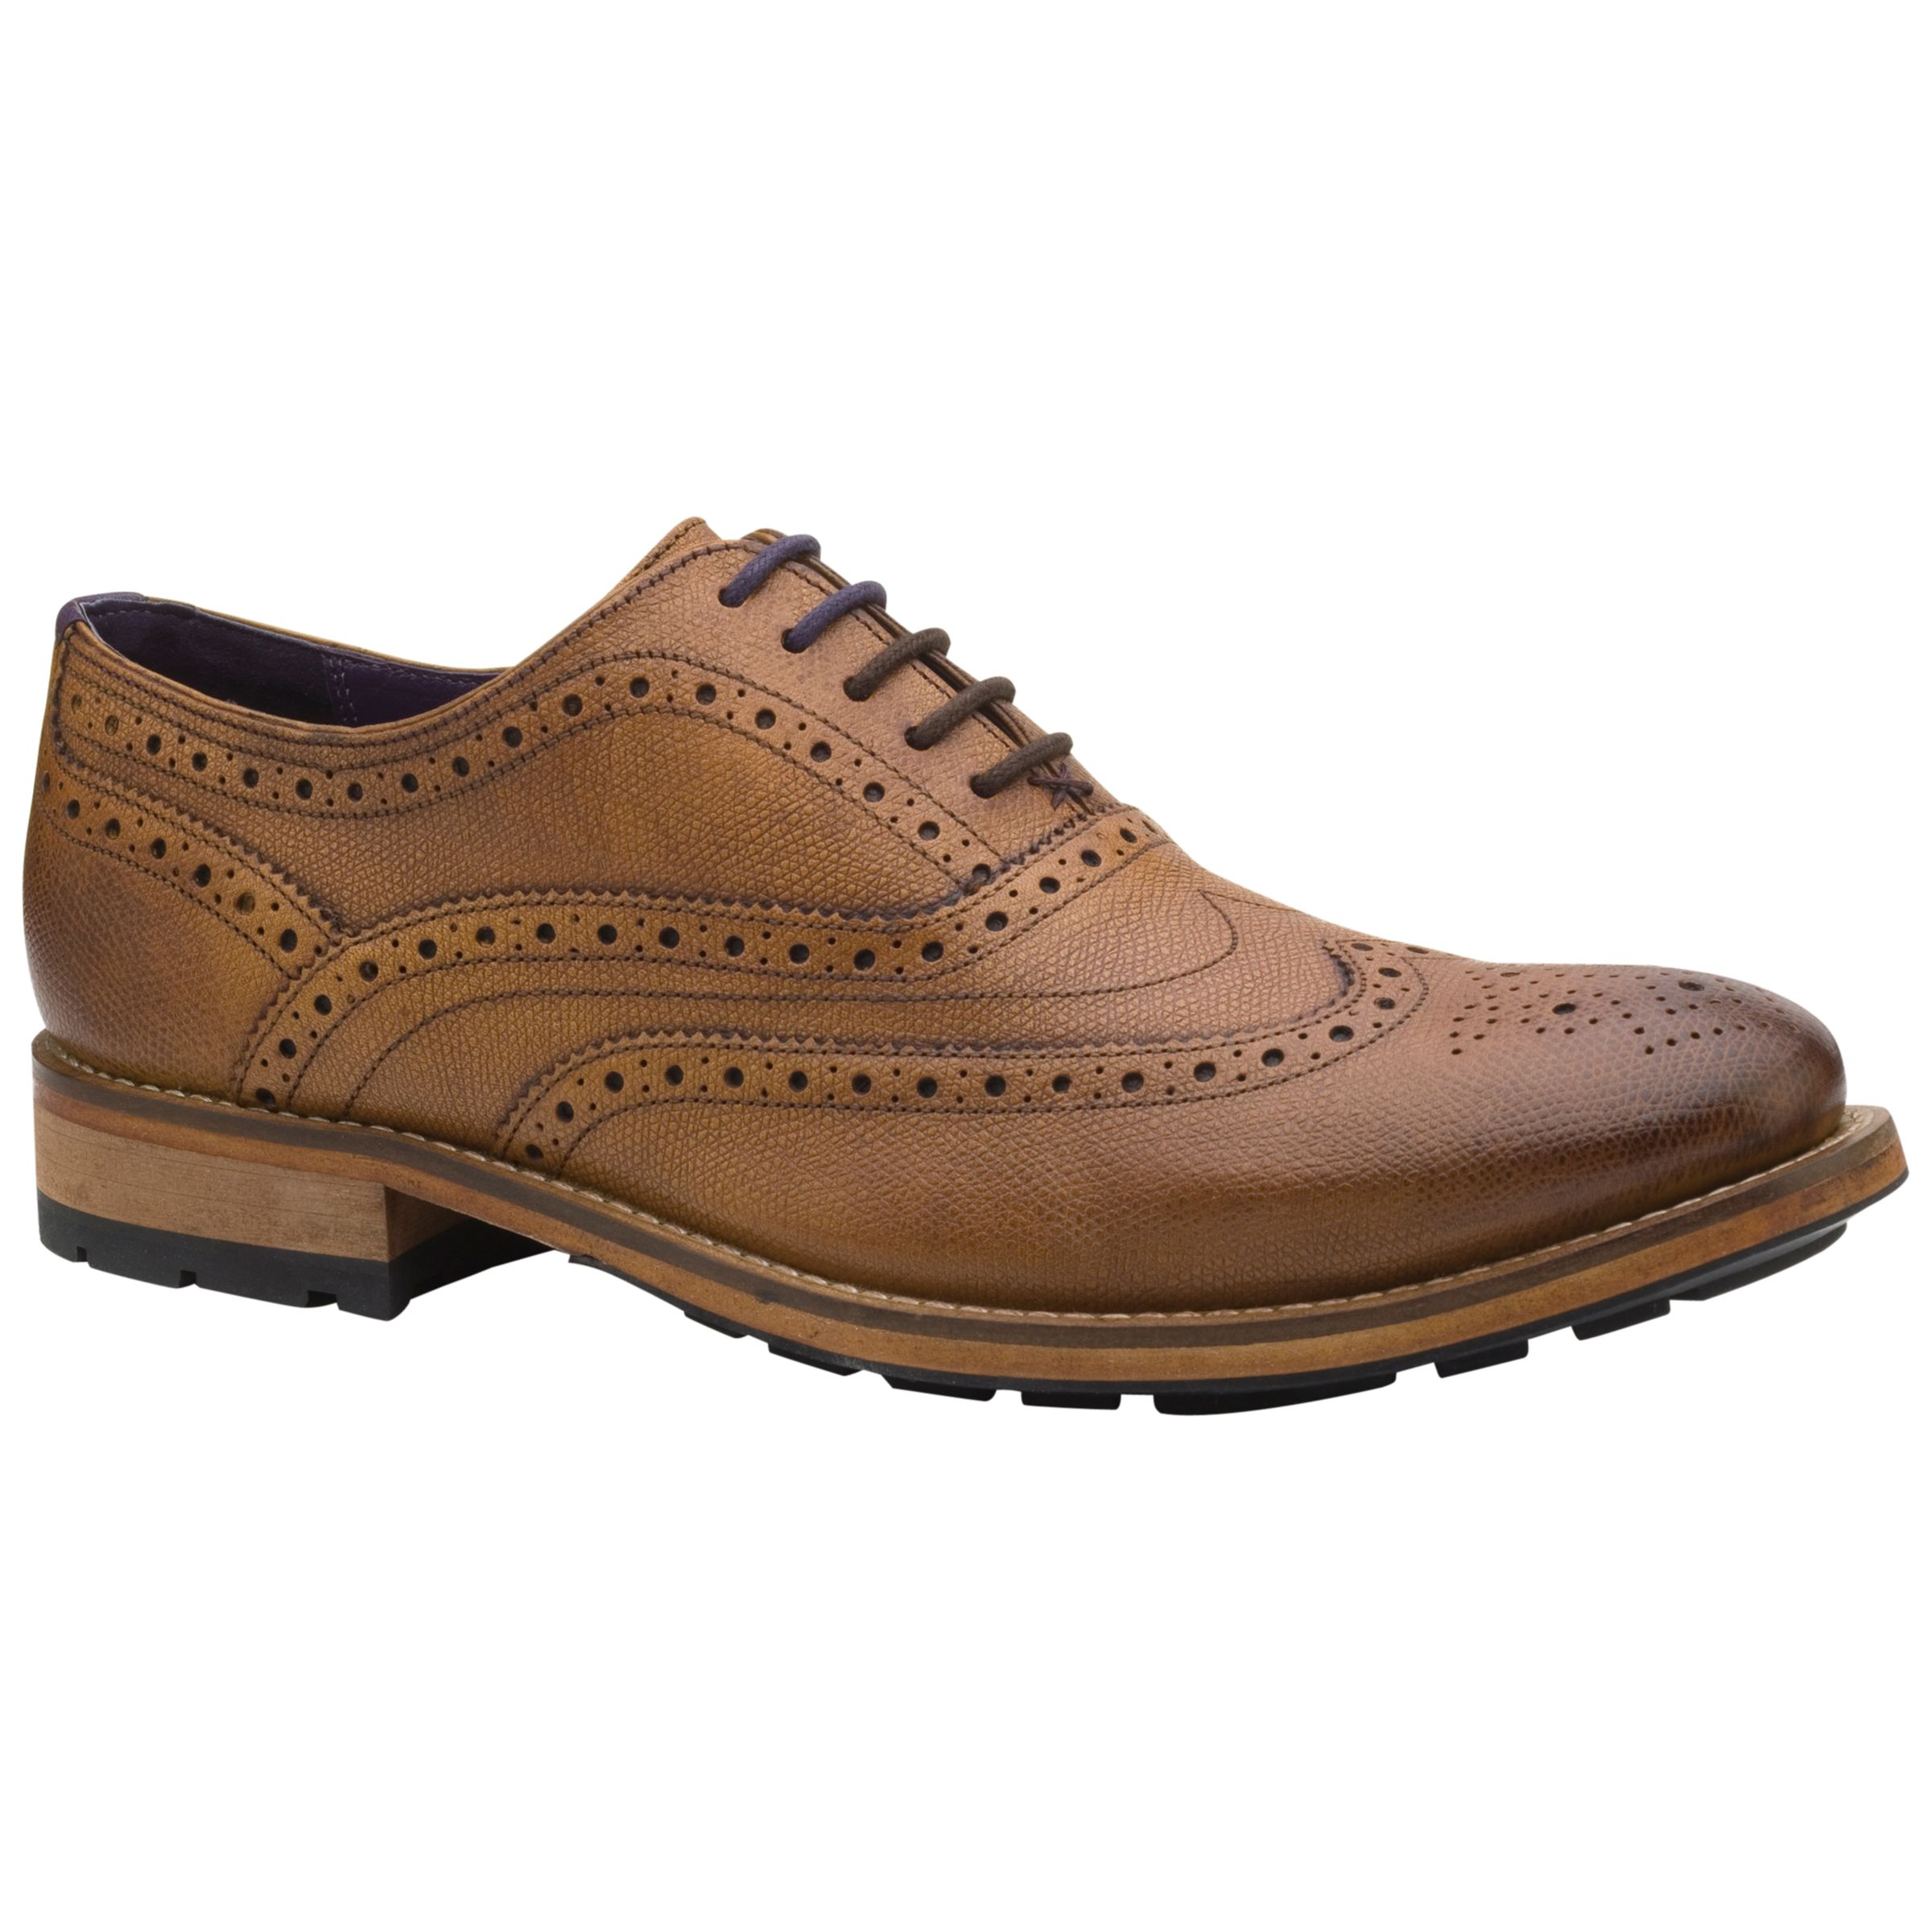 5c52415e37610 Ted Baker Guri 8 Lace-Up Oxford Brogues